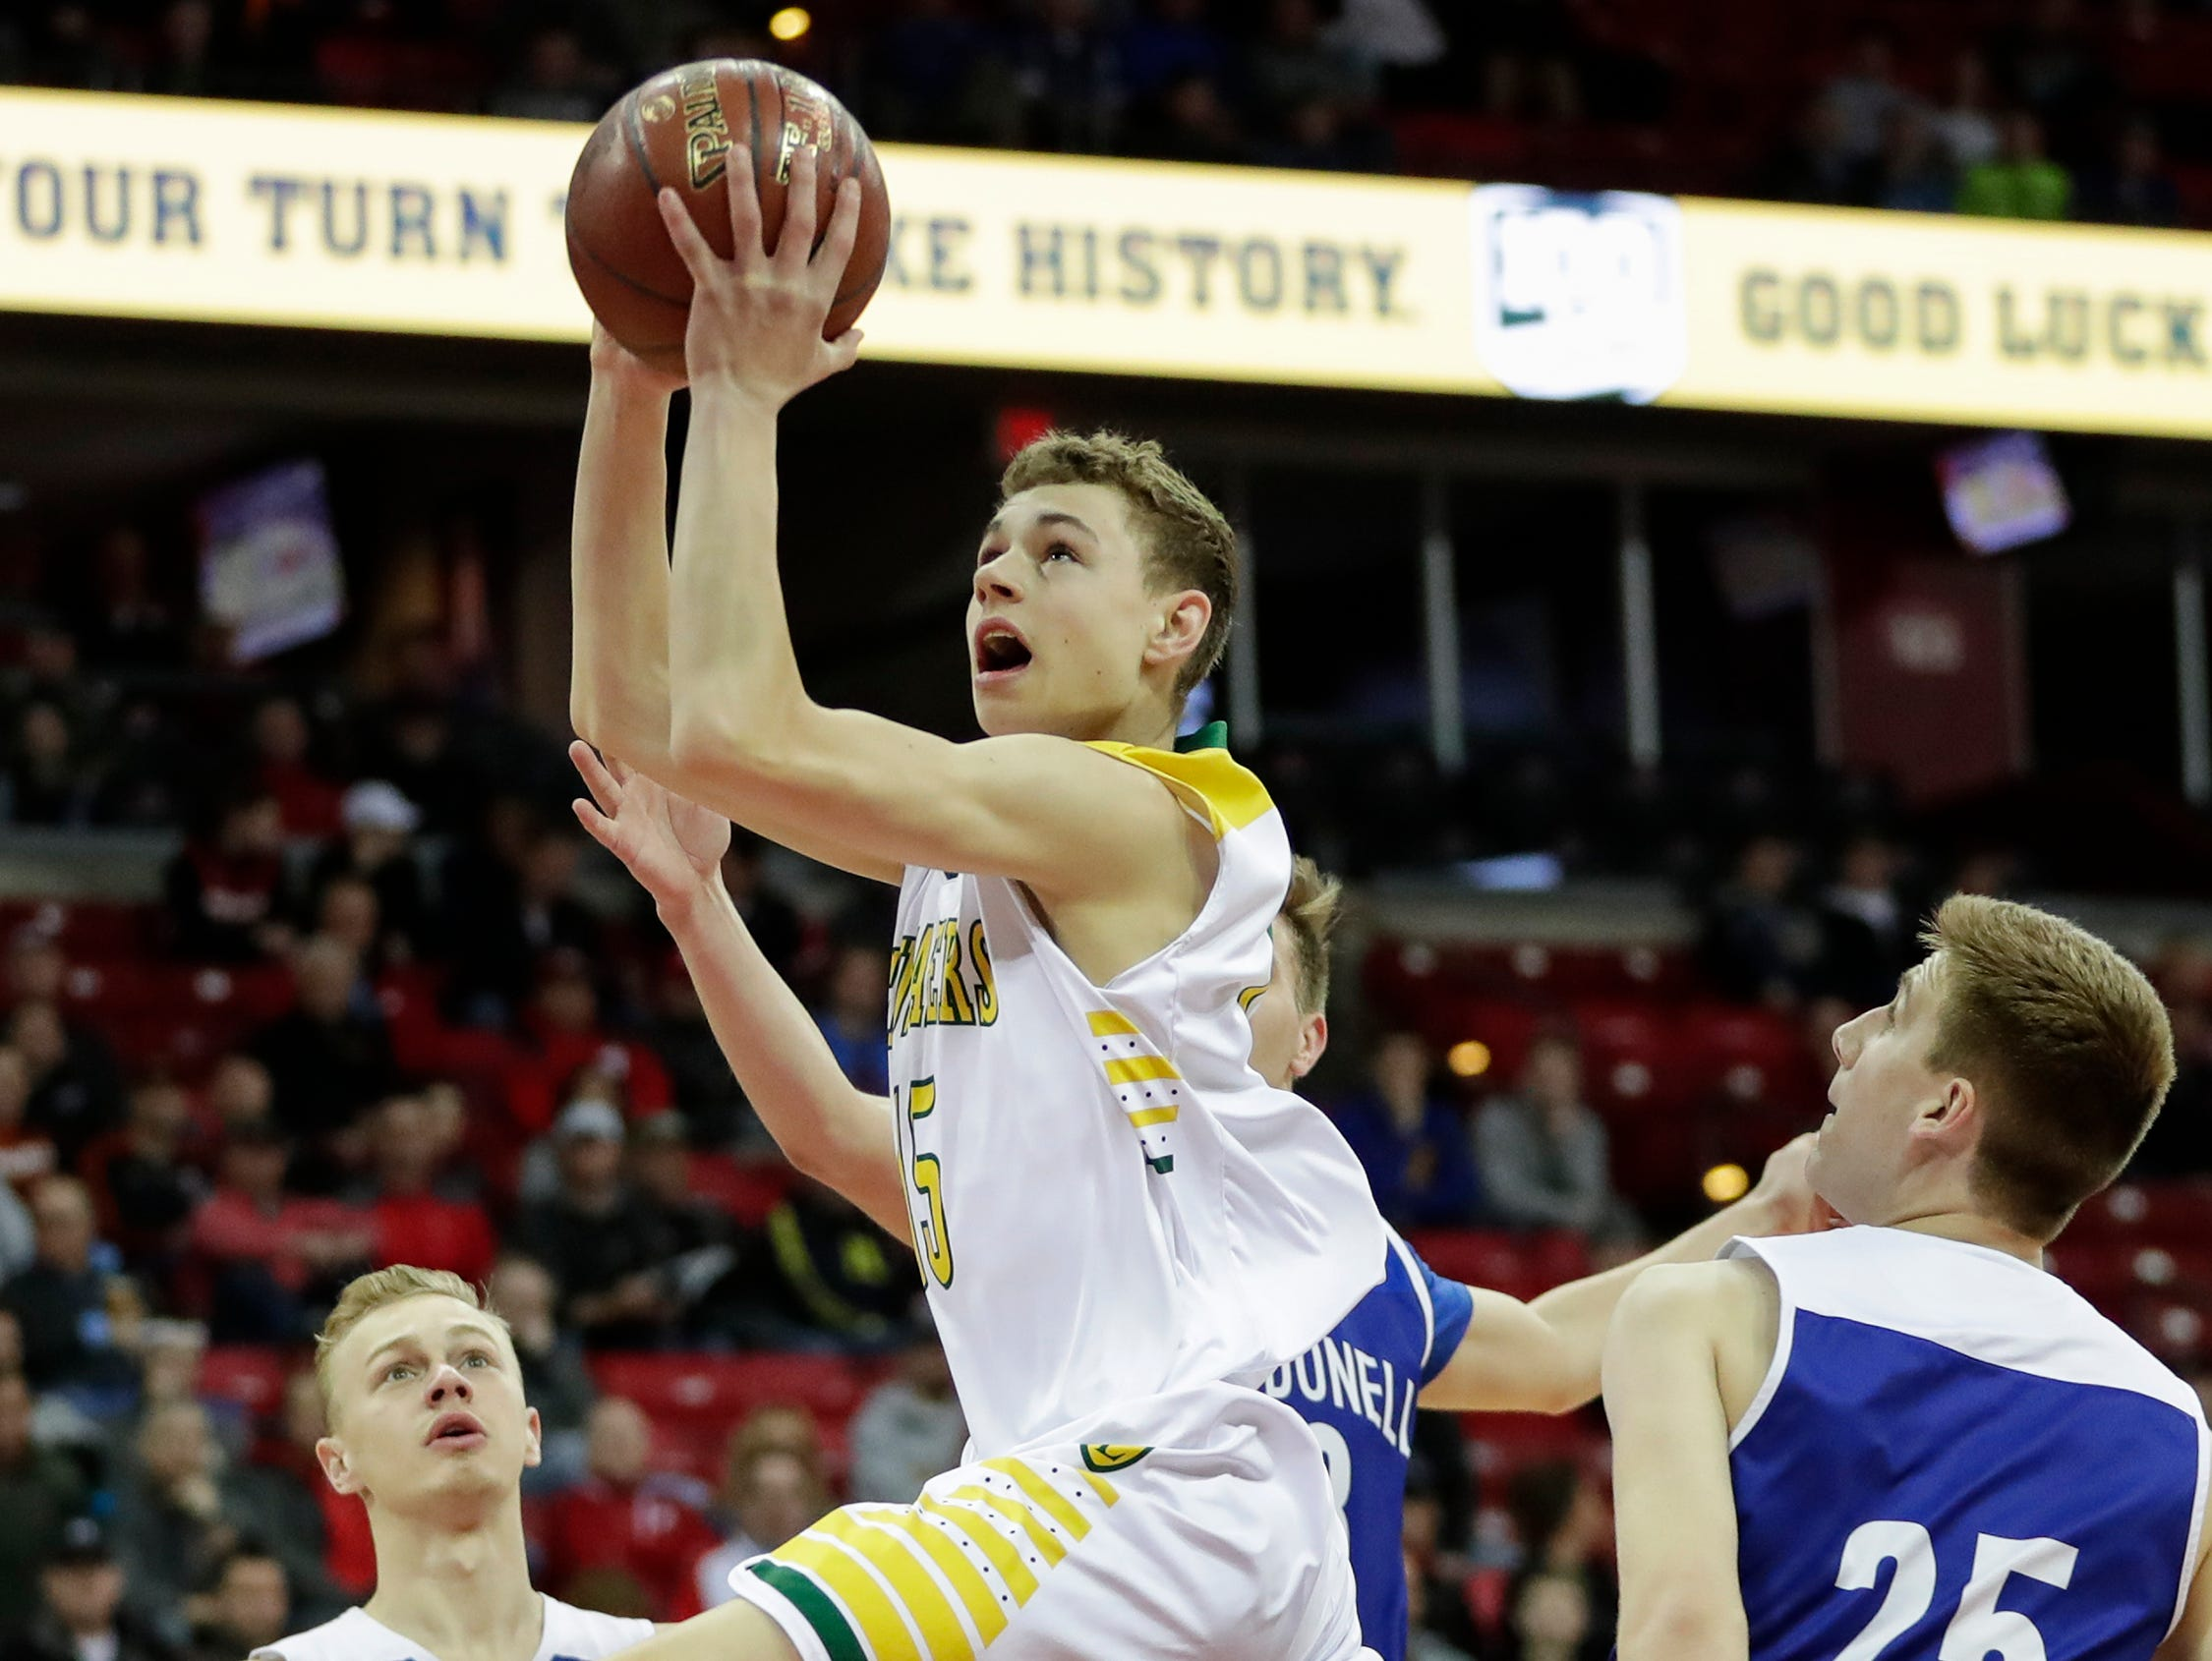 Sheboygan Area Lutheran High School's Delvin Barnstable (15) drives to the basket against McDonell Central Catholic High School during their WIAA Division 5 boys basketball state semifinal at the Kohl Center Friday, March 15, 2019, in Madison, Wis.